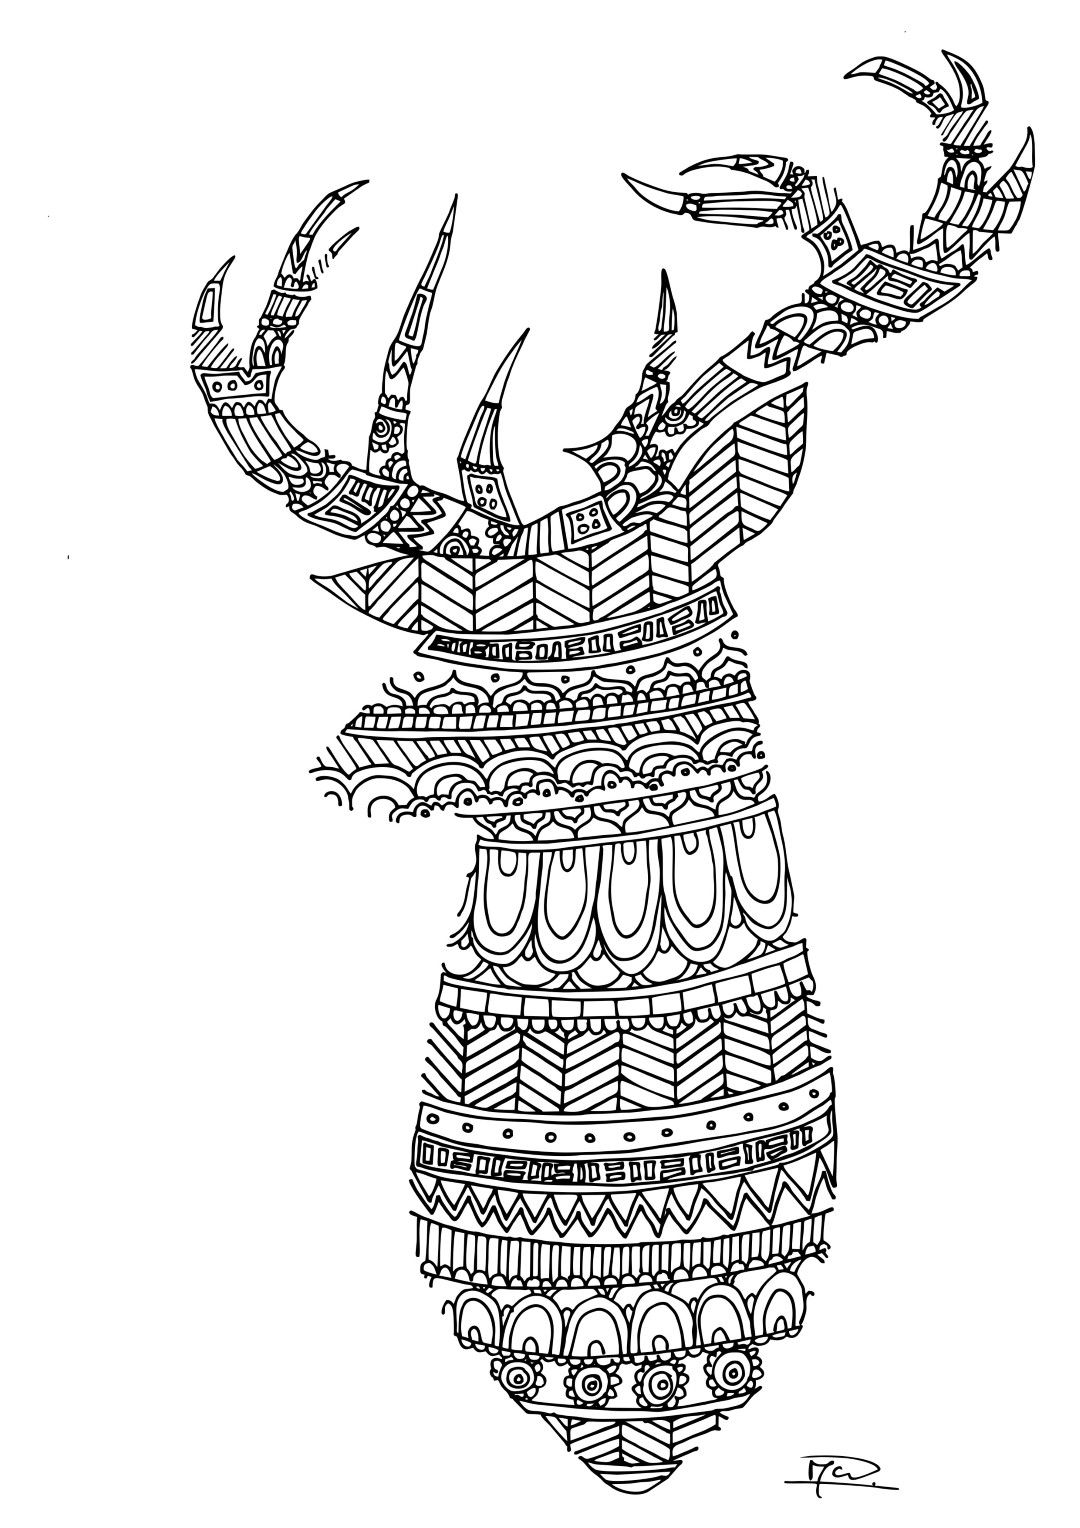 Coloring Rocks Deer Coloring Pages Christmas Coloring Pages Coloring Pages